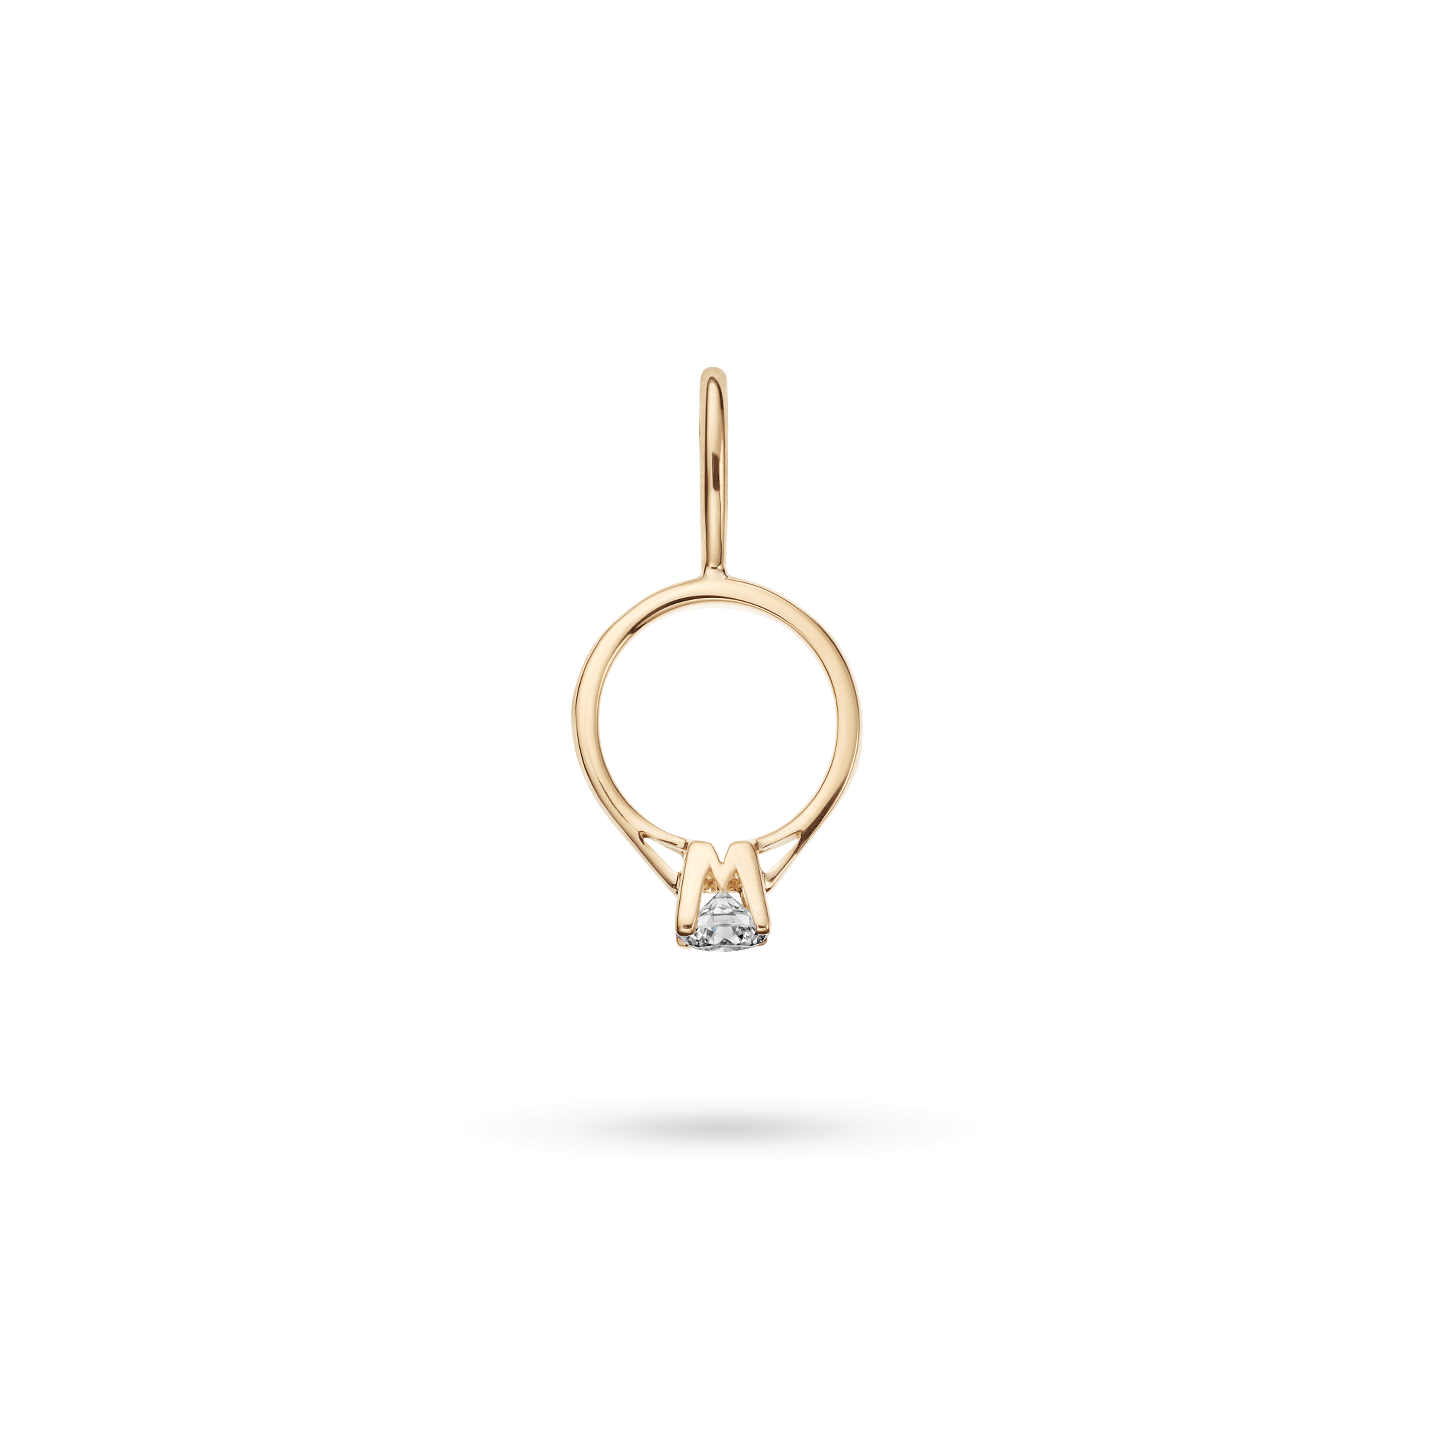 Engagement Ring Charm in Yellow Gold, Product Image 2